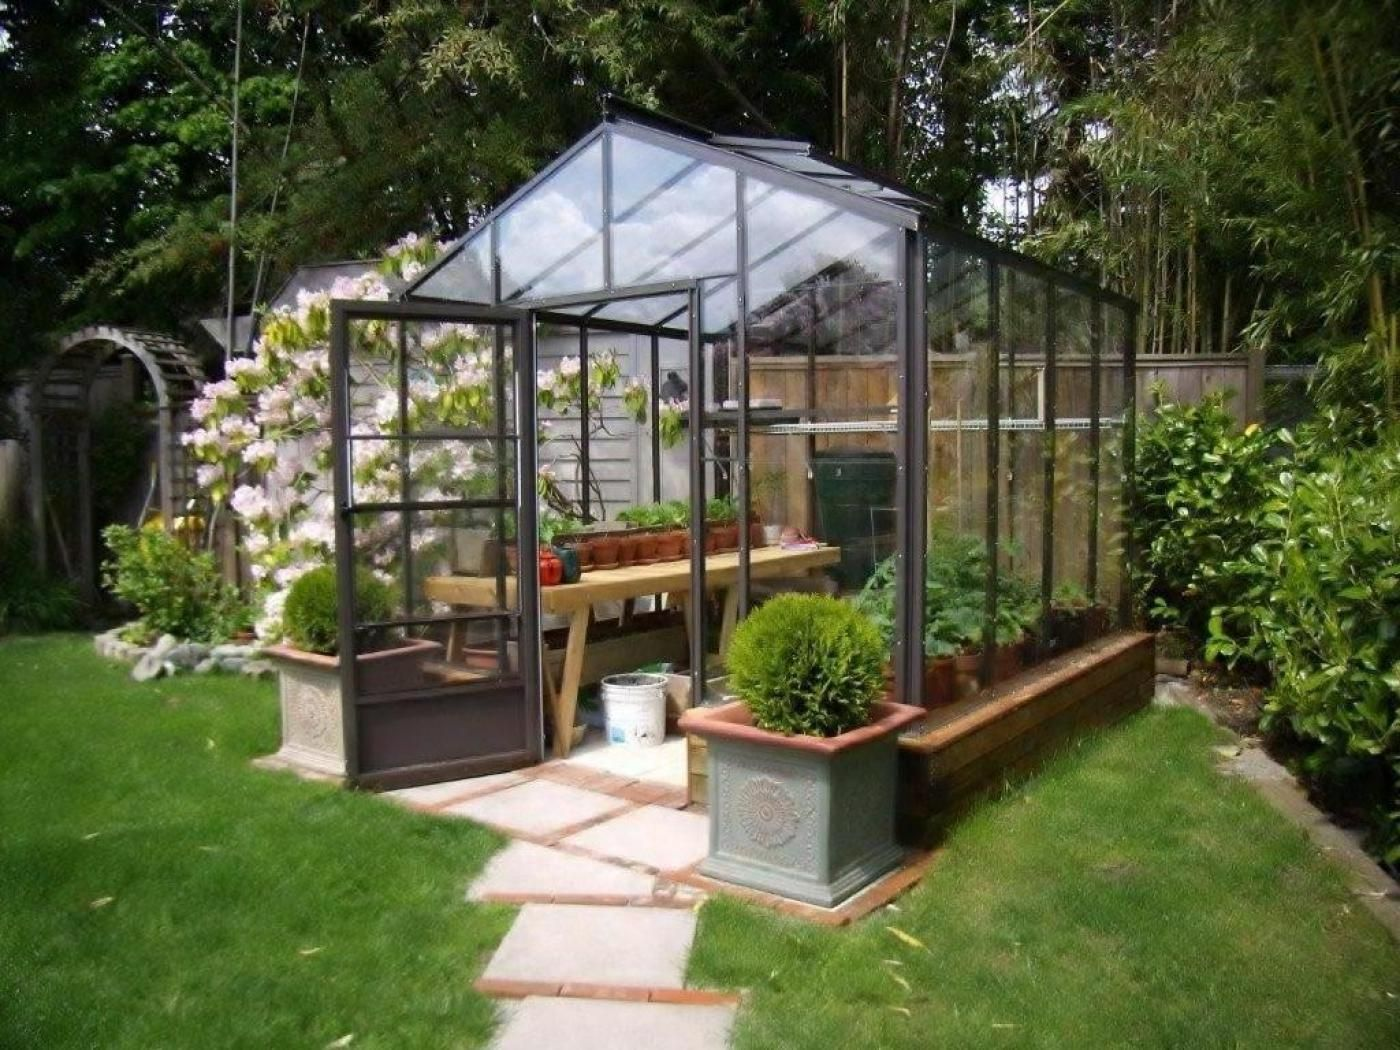 How to Build Small Greenhouse? | scapewallpaper | Gardening ... Small Greenhouses For Backyards on small greenhouse kits, tarps for backyards, small greenhouse heaters, small home greenhouse, small interior greenhouse, small attached greenhouse, small patio greenhouse, small greenhouse ideas, small greenhouse vegetables, small greenhouse tents, small pvc greenhouse plans, small greenhouse designs, water features for backyards, small greenhouse cover, small garden greenhouse, small indoor greenhouse, small backyard greenhouse plan, small portable greenhouse, small hobby greenhouse, greenhouse kits for backyards,